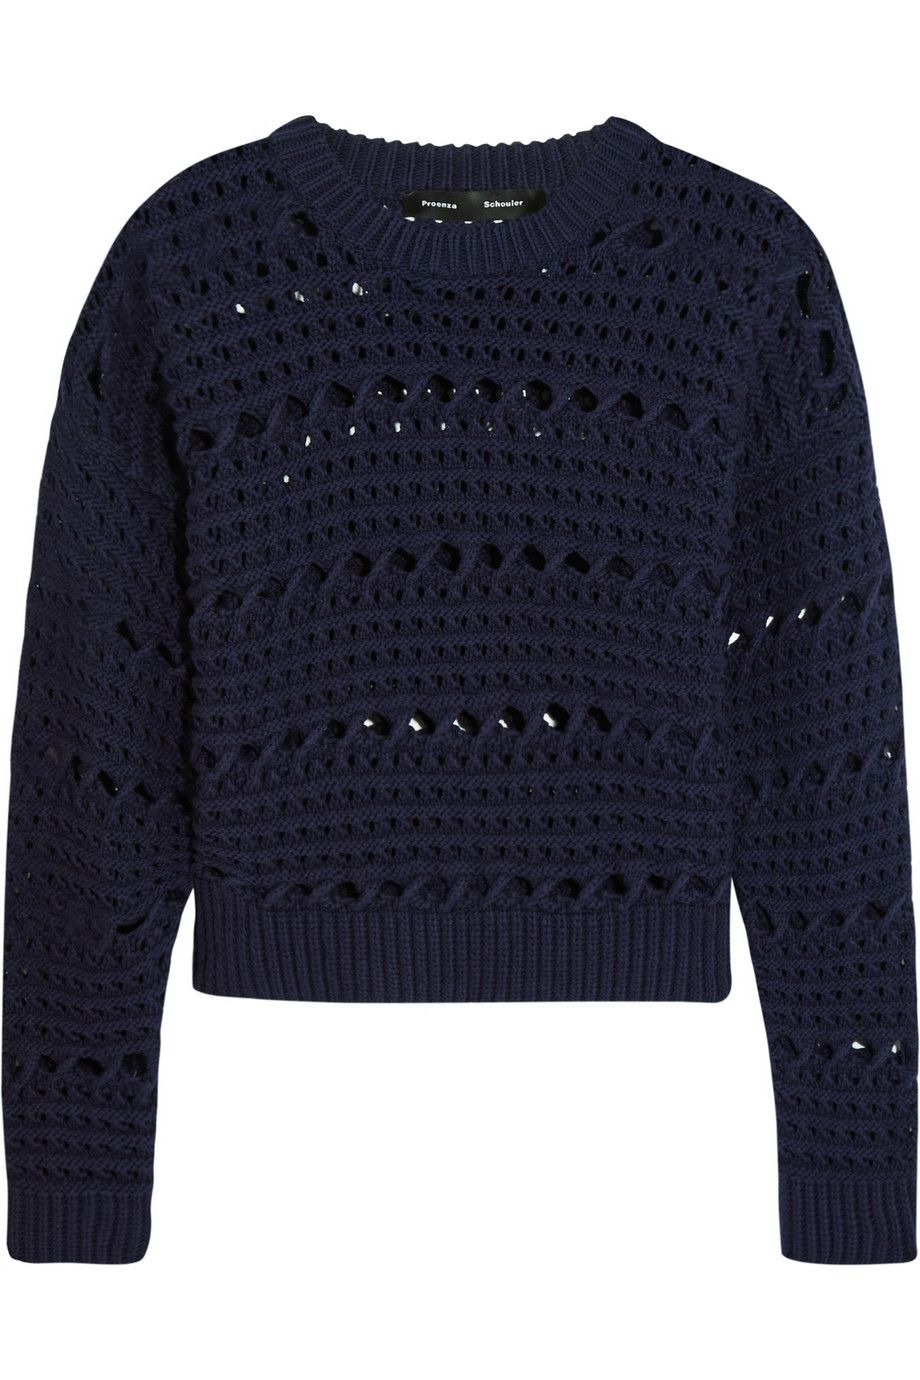 PROENZA SCHOULER Cropped Open-Knit Cotton-Blend Sweater. #proenzaschouler #cloth #sweater